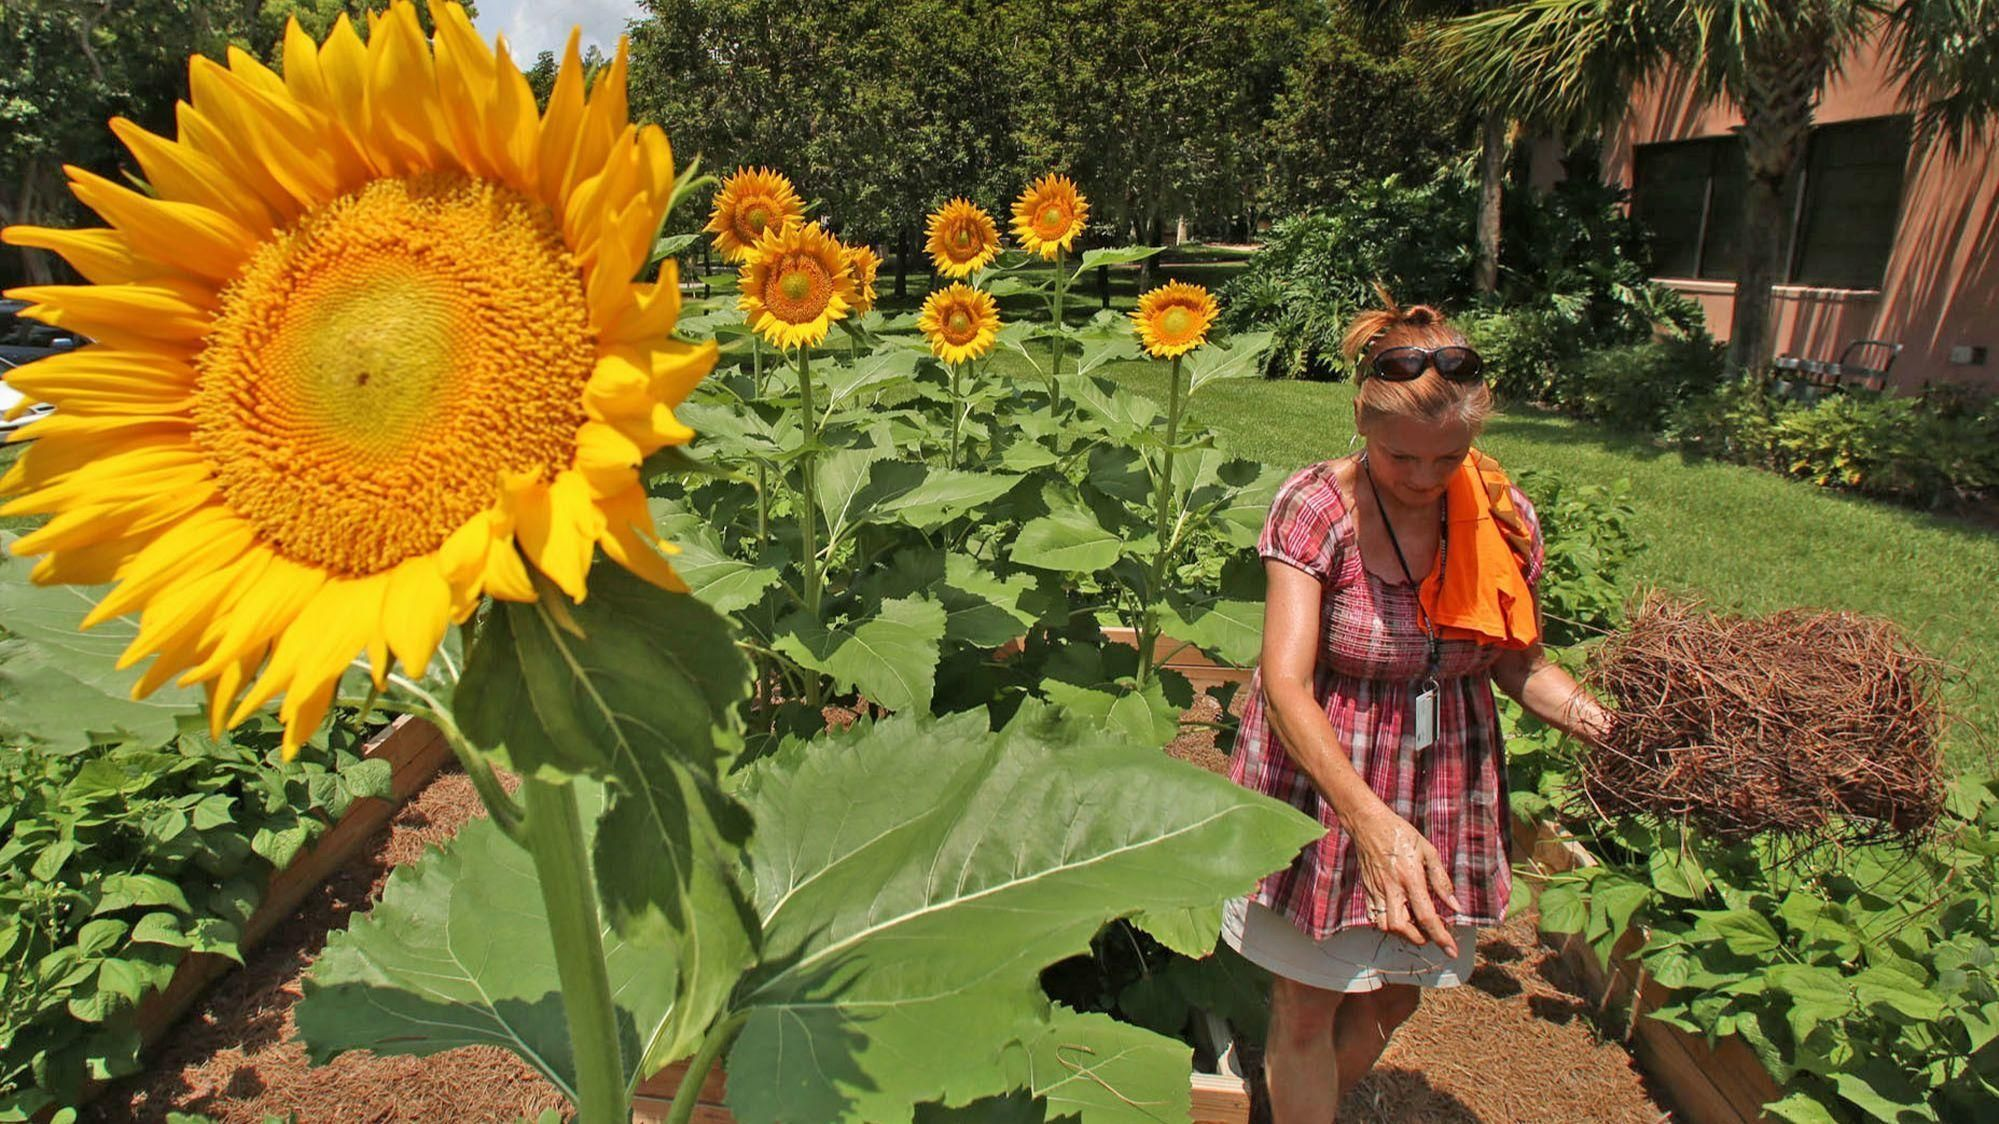 Plant Doctor Tom Maccubbin Gives Advice To Orlando Area Gardeners About Sunflowers Small Containers Liquid Fertilizer A Moving Plants Avocado Seed Sunflower